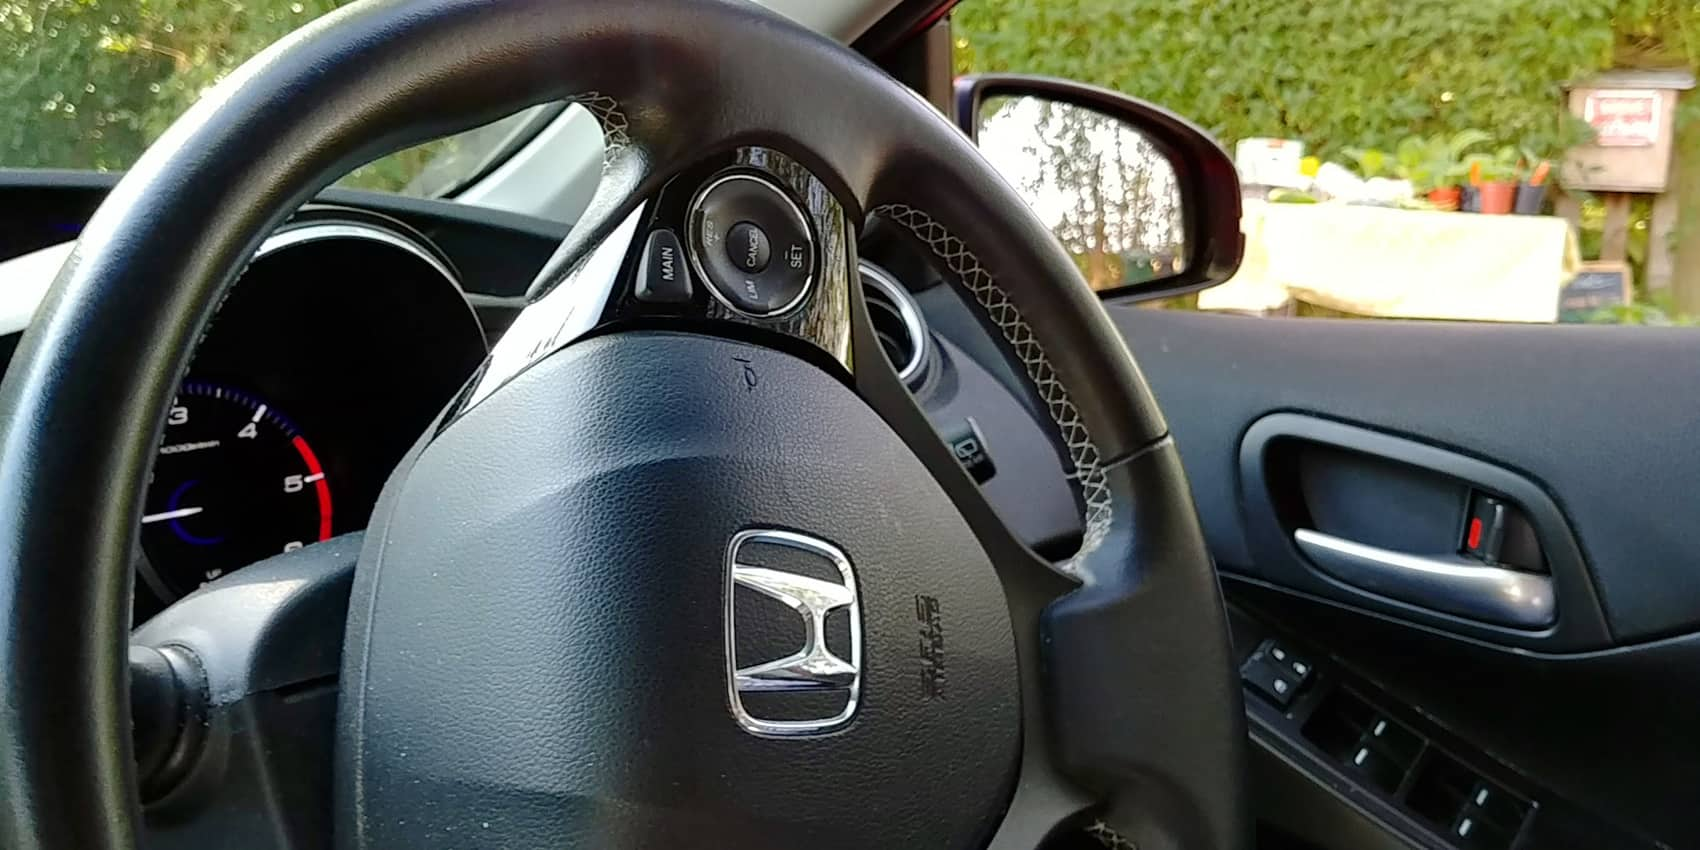 Steering wheel on right, drive on the left.